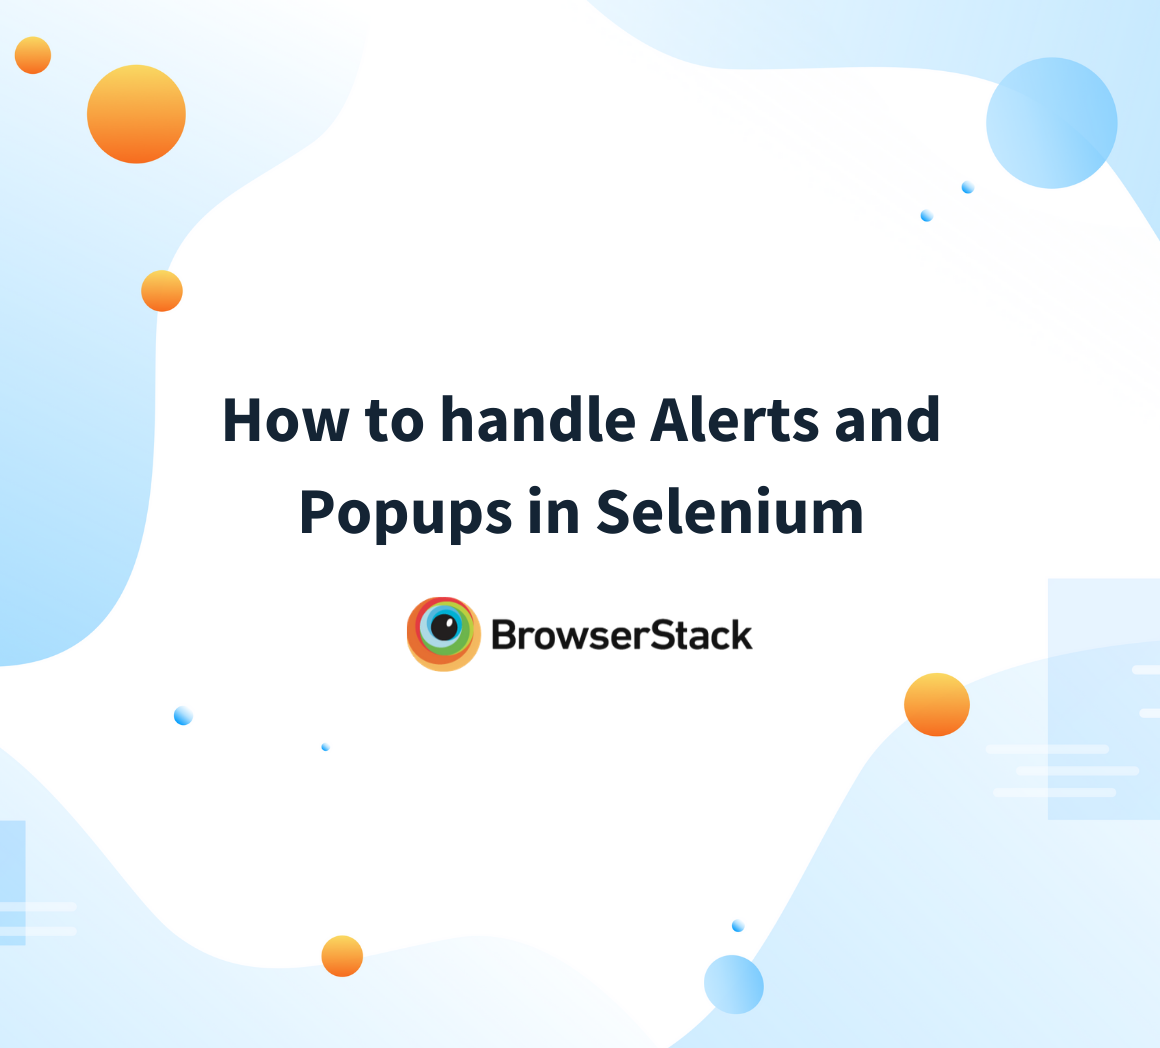 Handling Alerts and Popups in Selenium